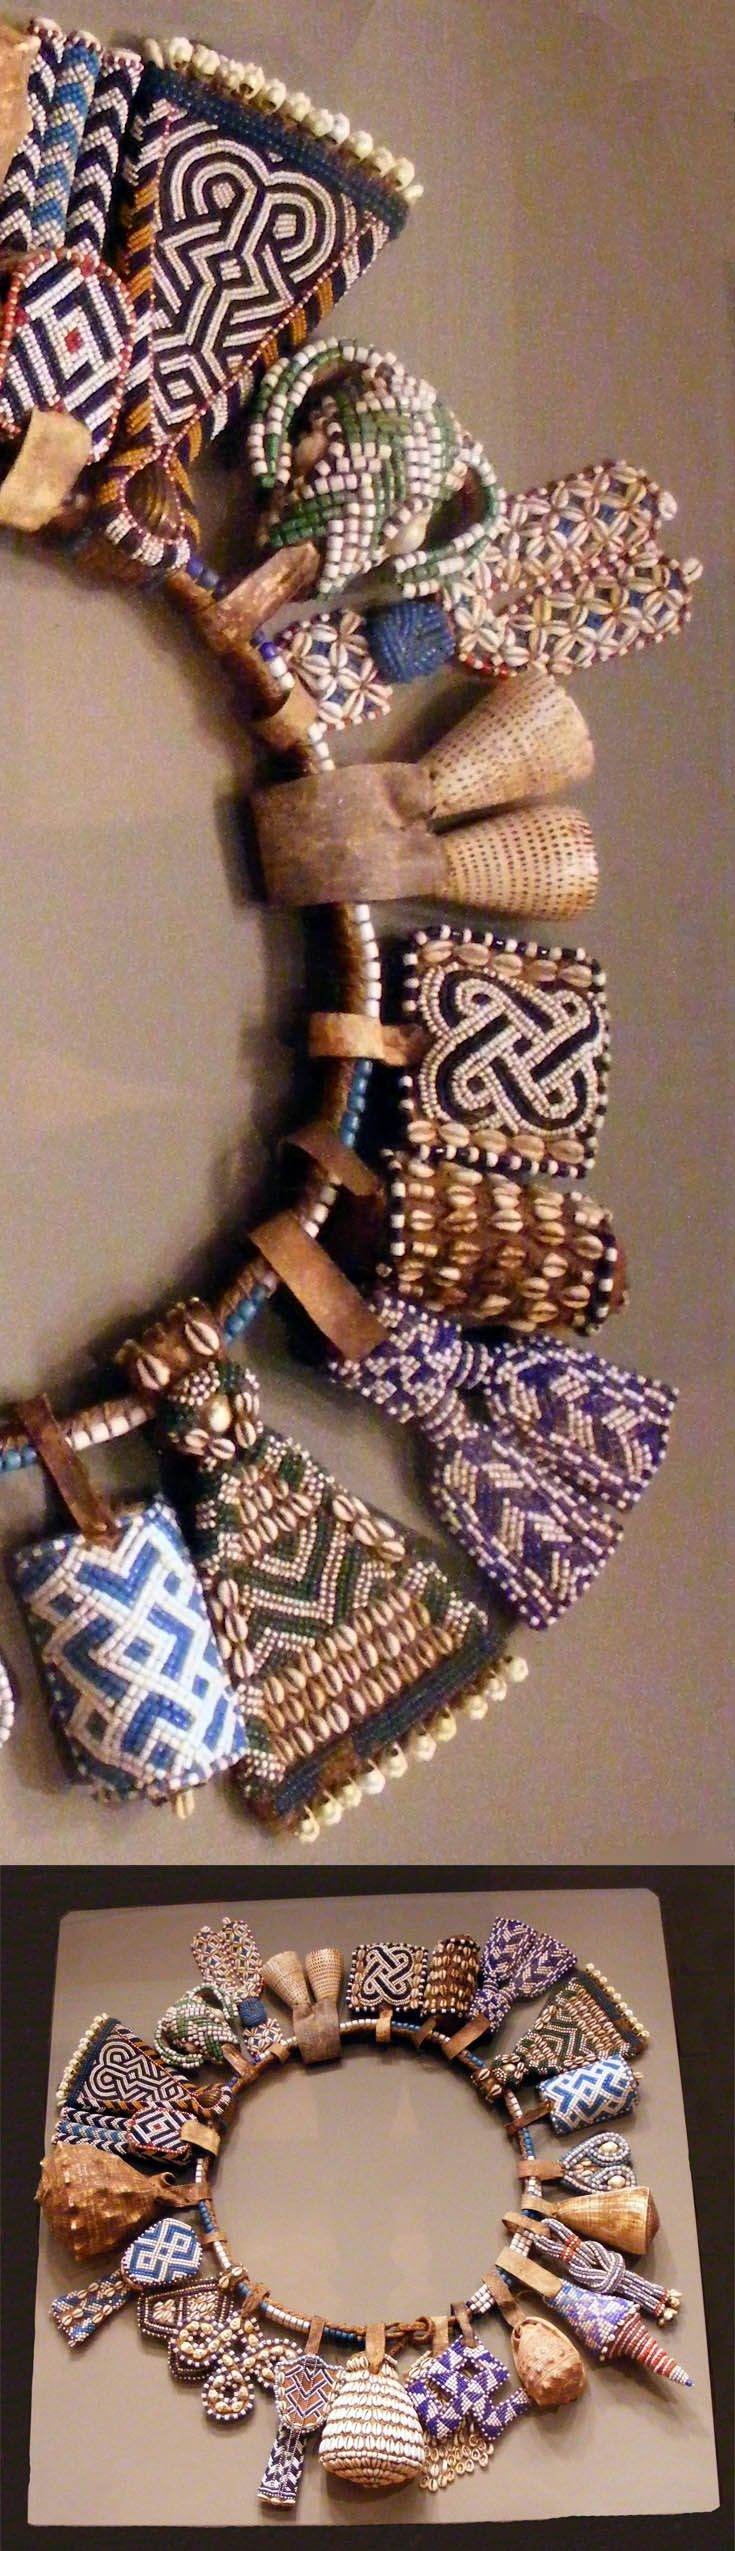 Details from a belt from the kuba people of dr congo glass beads shells leather natural fiber